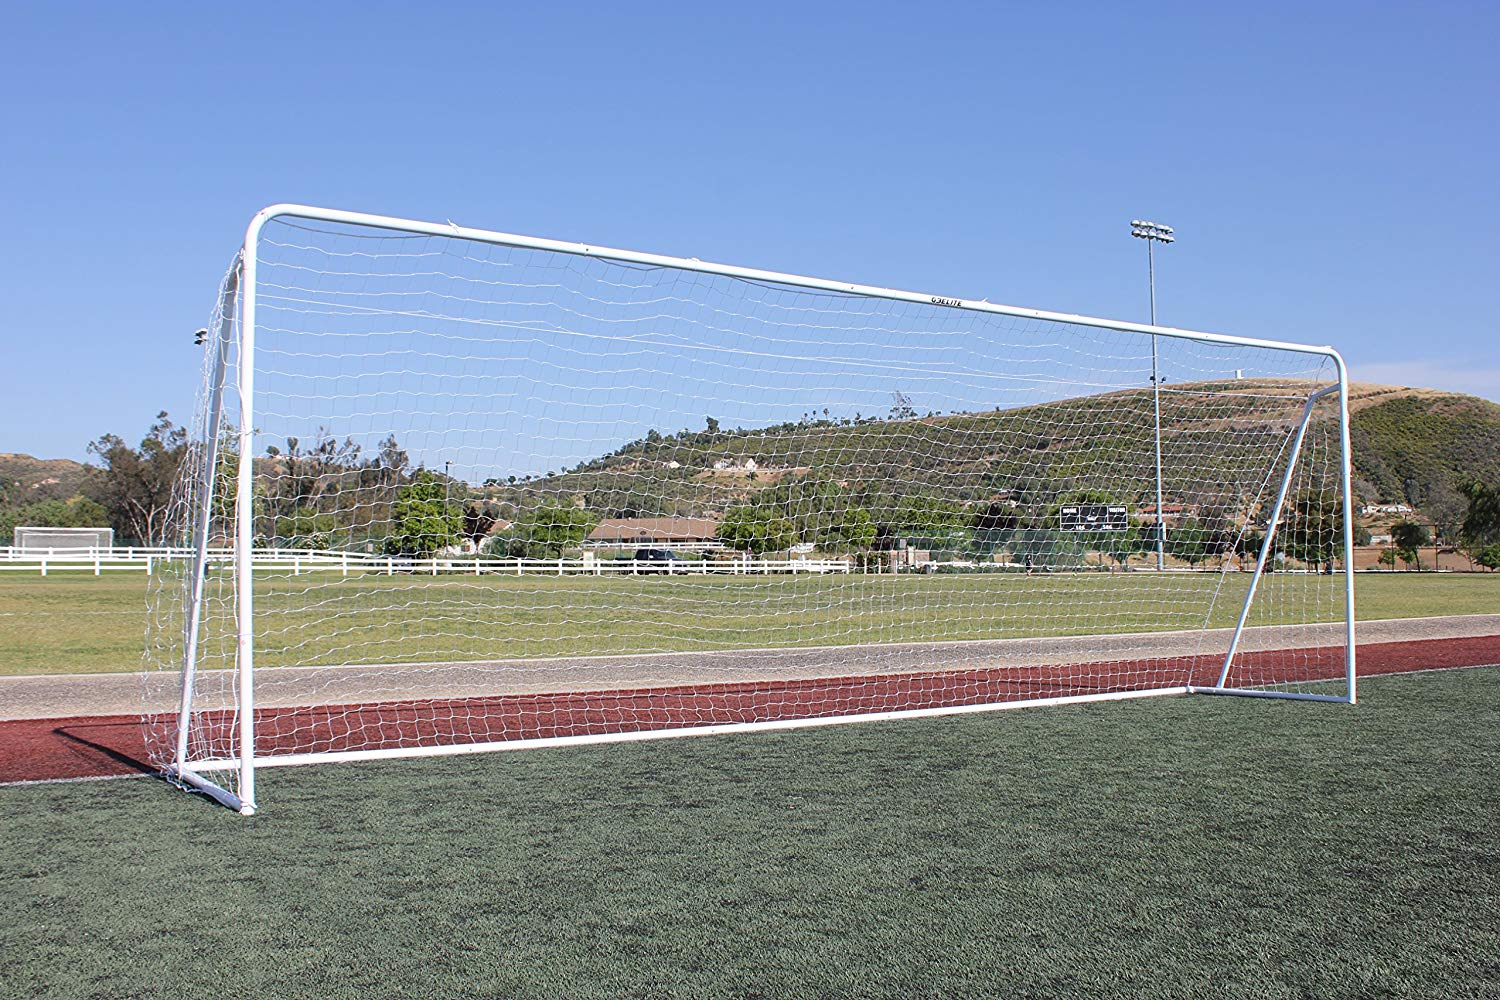 "24x8 Soccer Goal, Official Regulation Round Corner Face, 3mm White Net, Portable, 2"" Galvanized Steel Post, 8'x24'x1'x4½' Quality Practice Training Goalie (1 Yr Frame Warranty)"